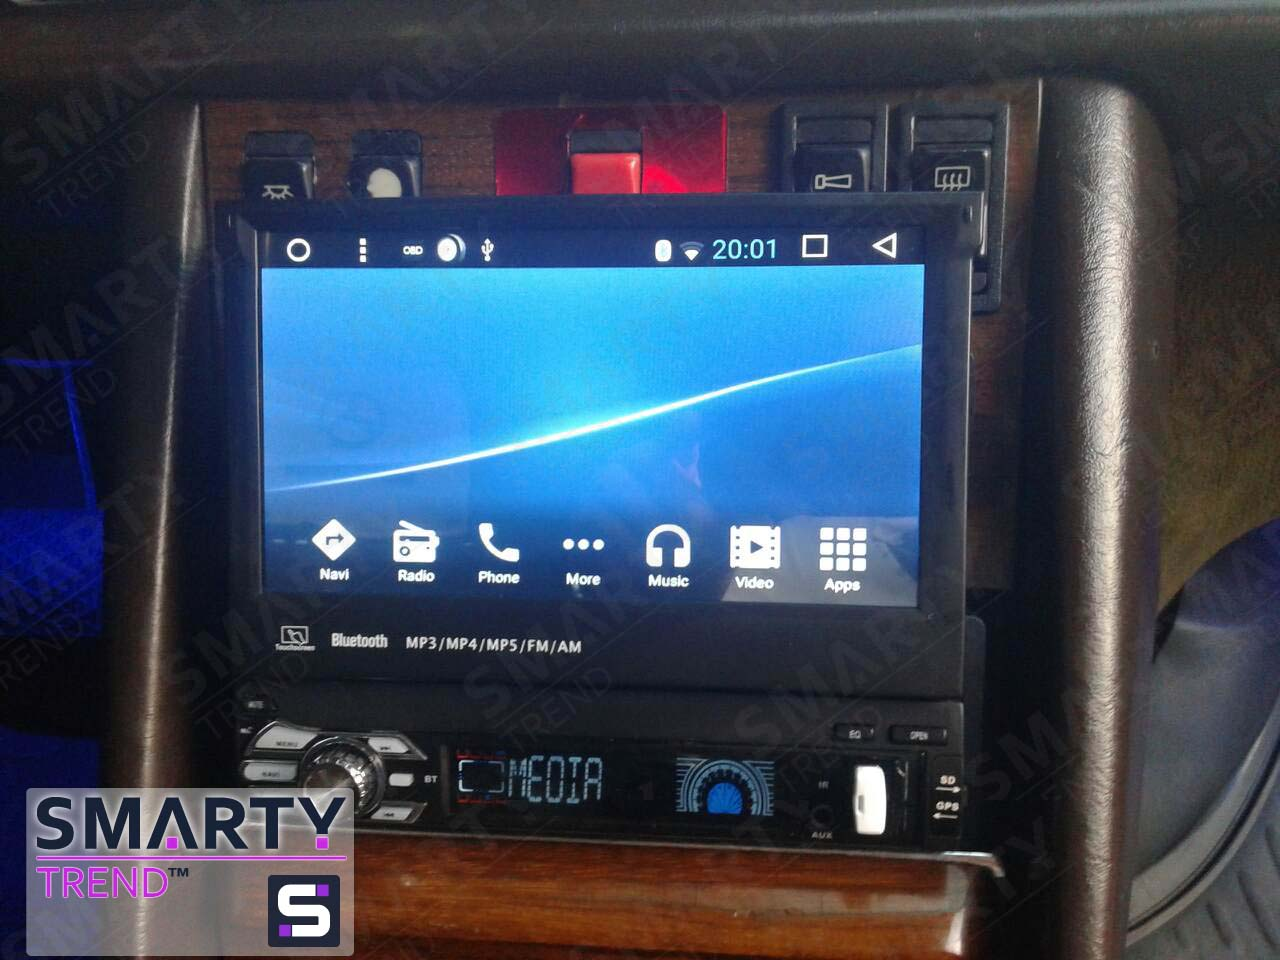 The SMARTY Trend head unit for Mercedes Benz W126